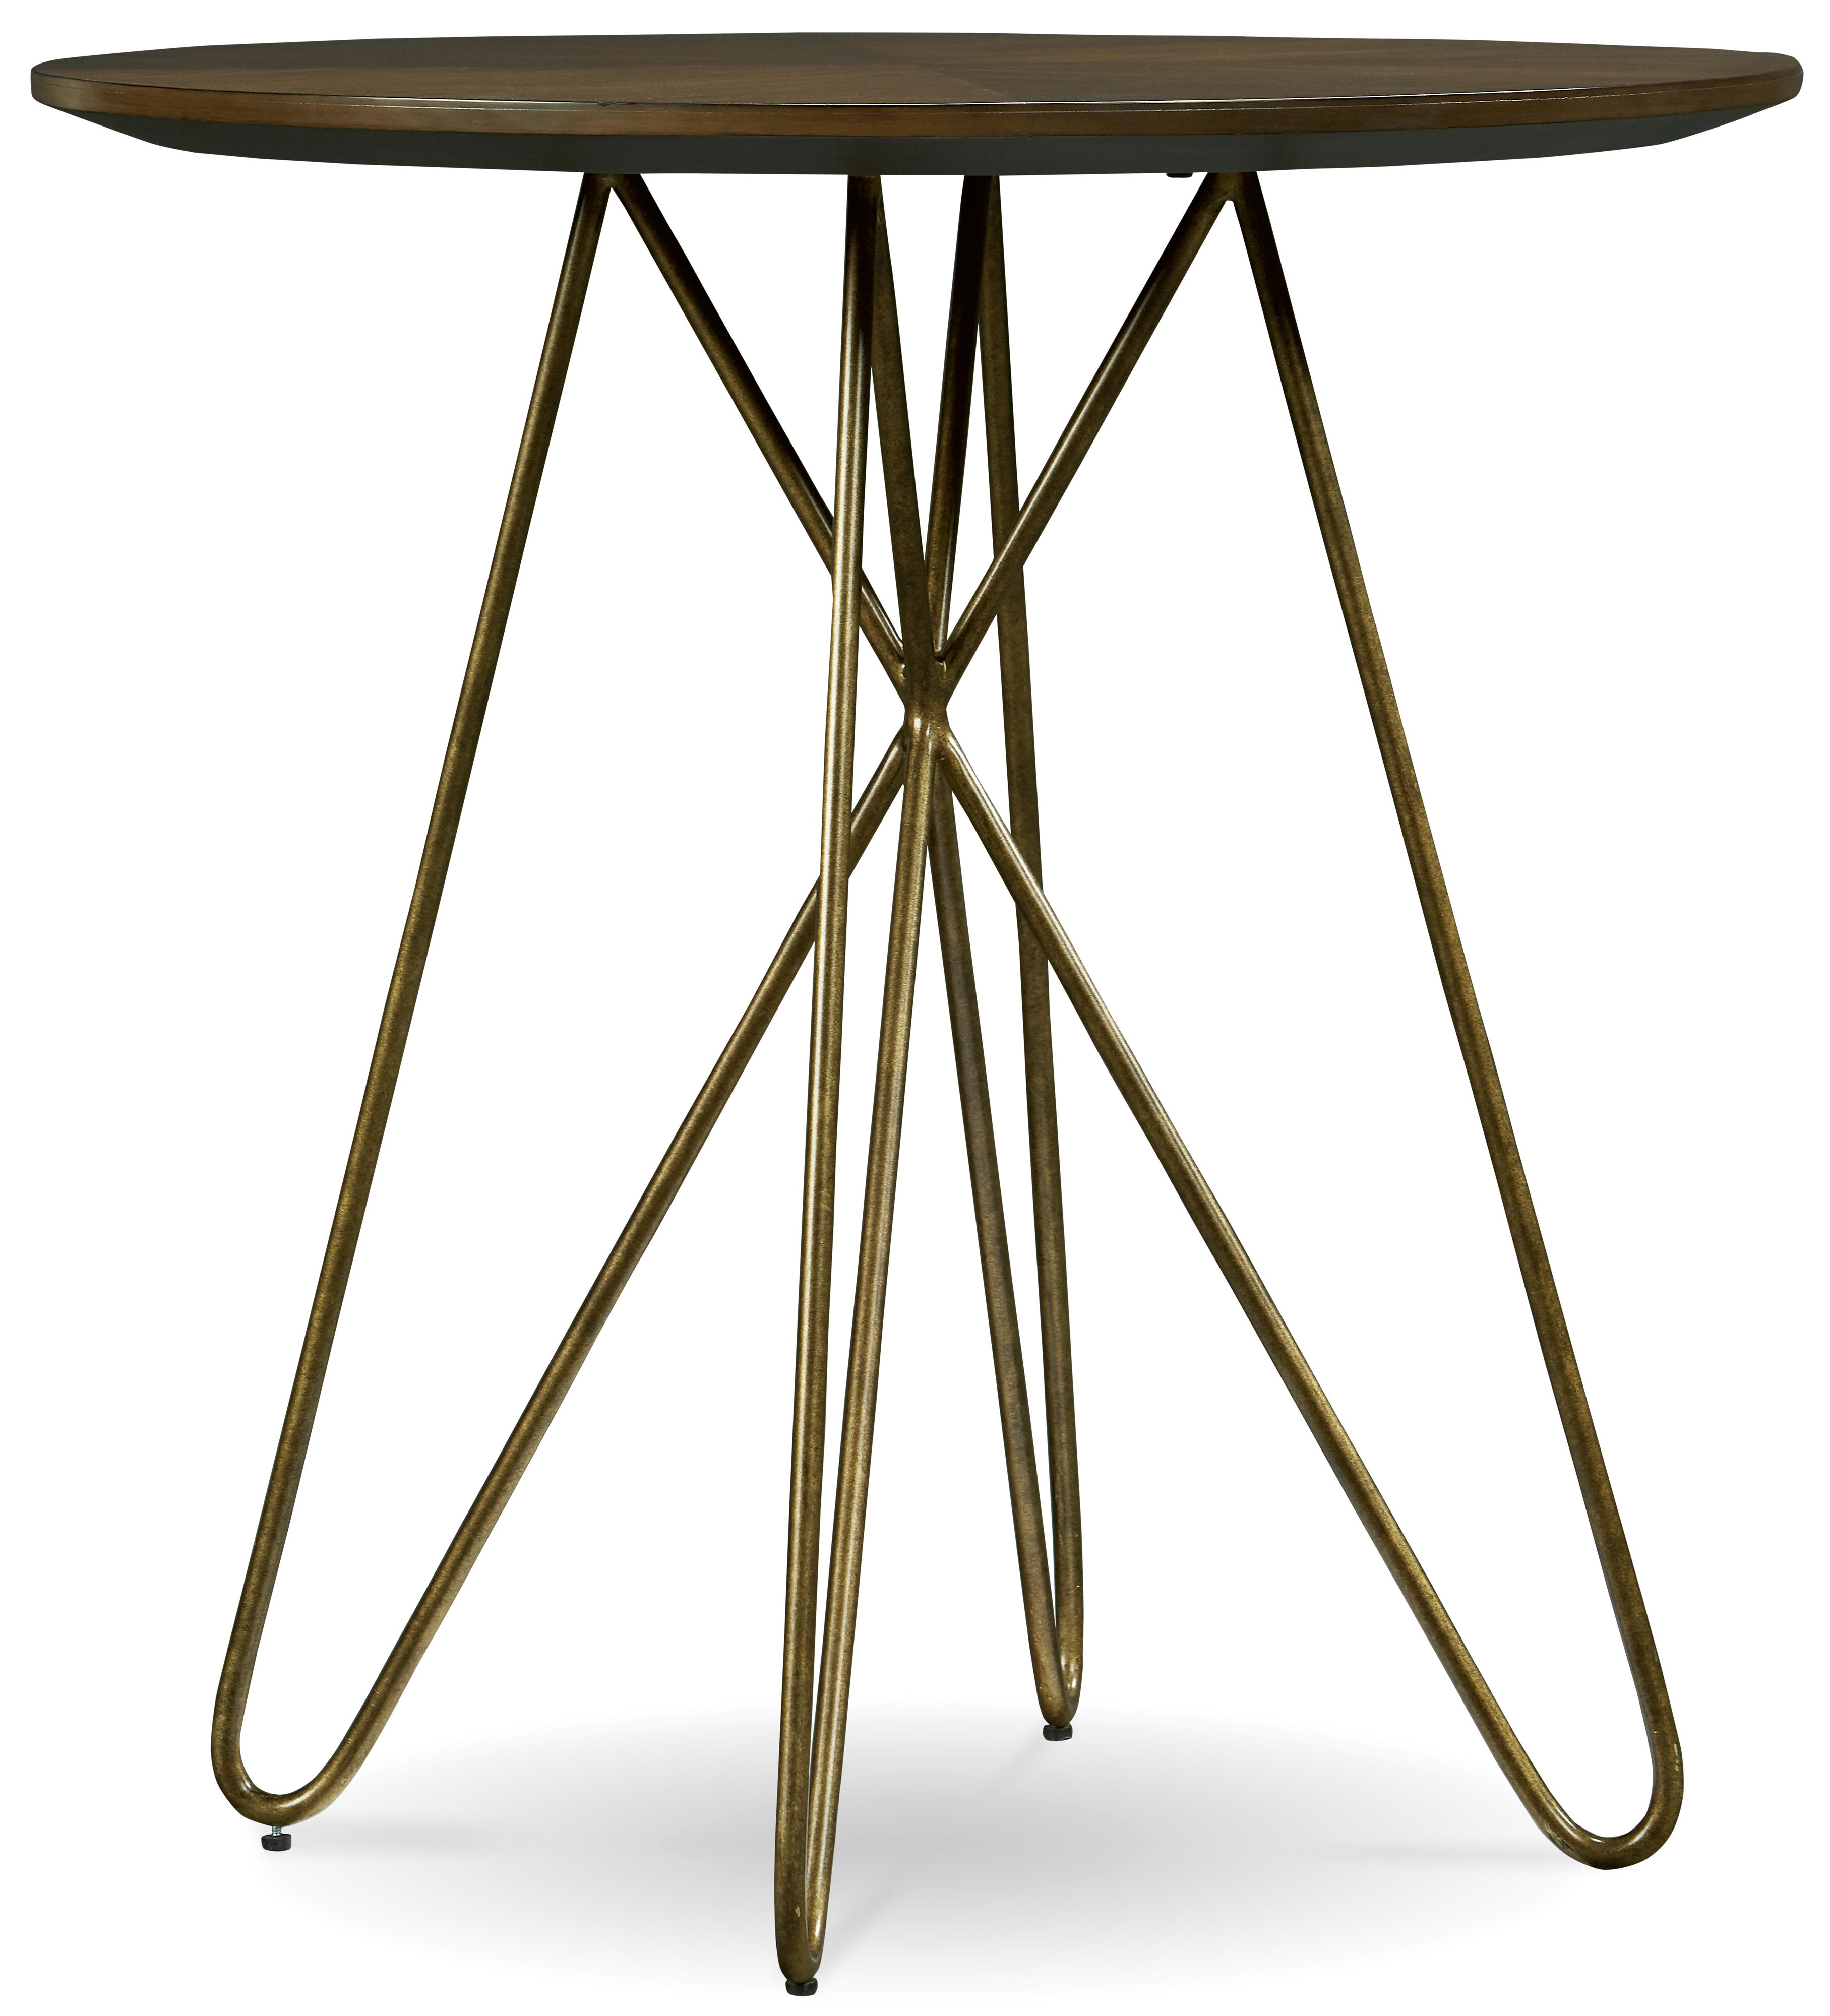 Silver Lake High Dining Table with Hairpin Leg Pedestal by  : products2Fartfurnitureinc2Fcolor2Fepicenters223226 1812 b5 from www.wolffurniture.com size 3630 x 4000 jpeg 605kB